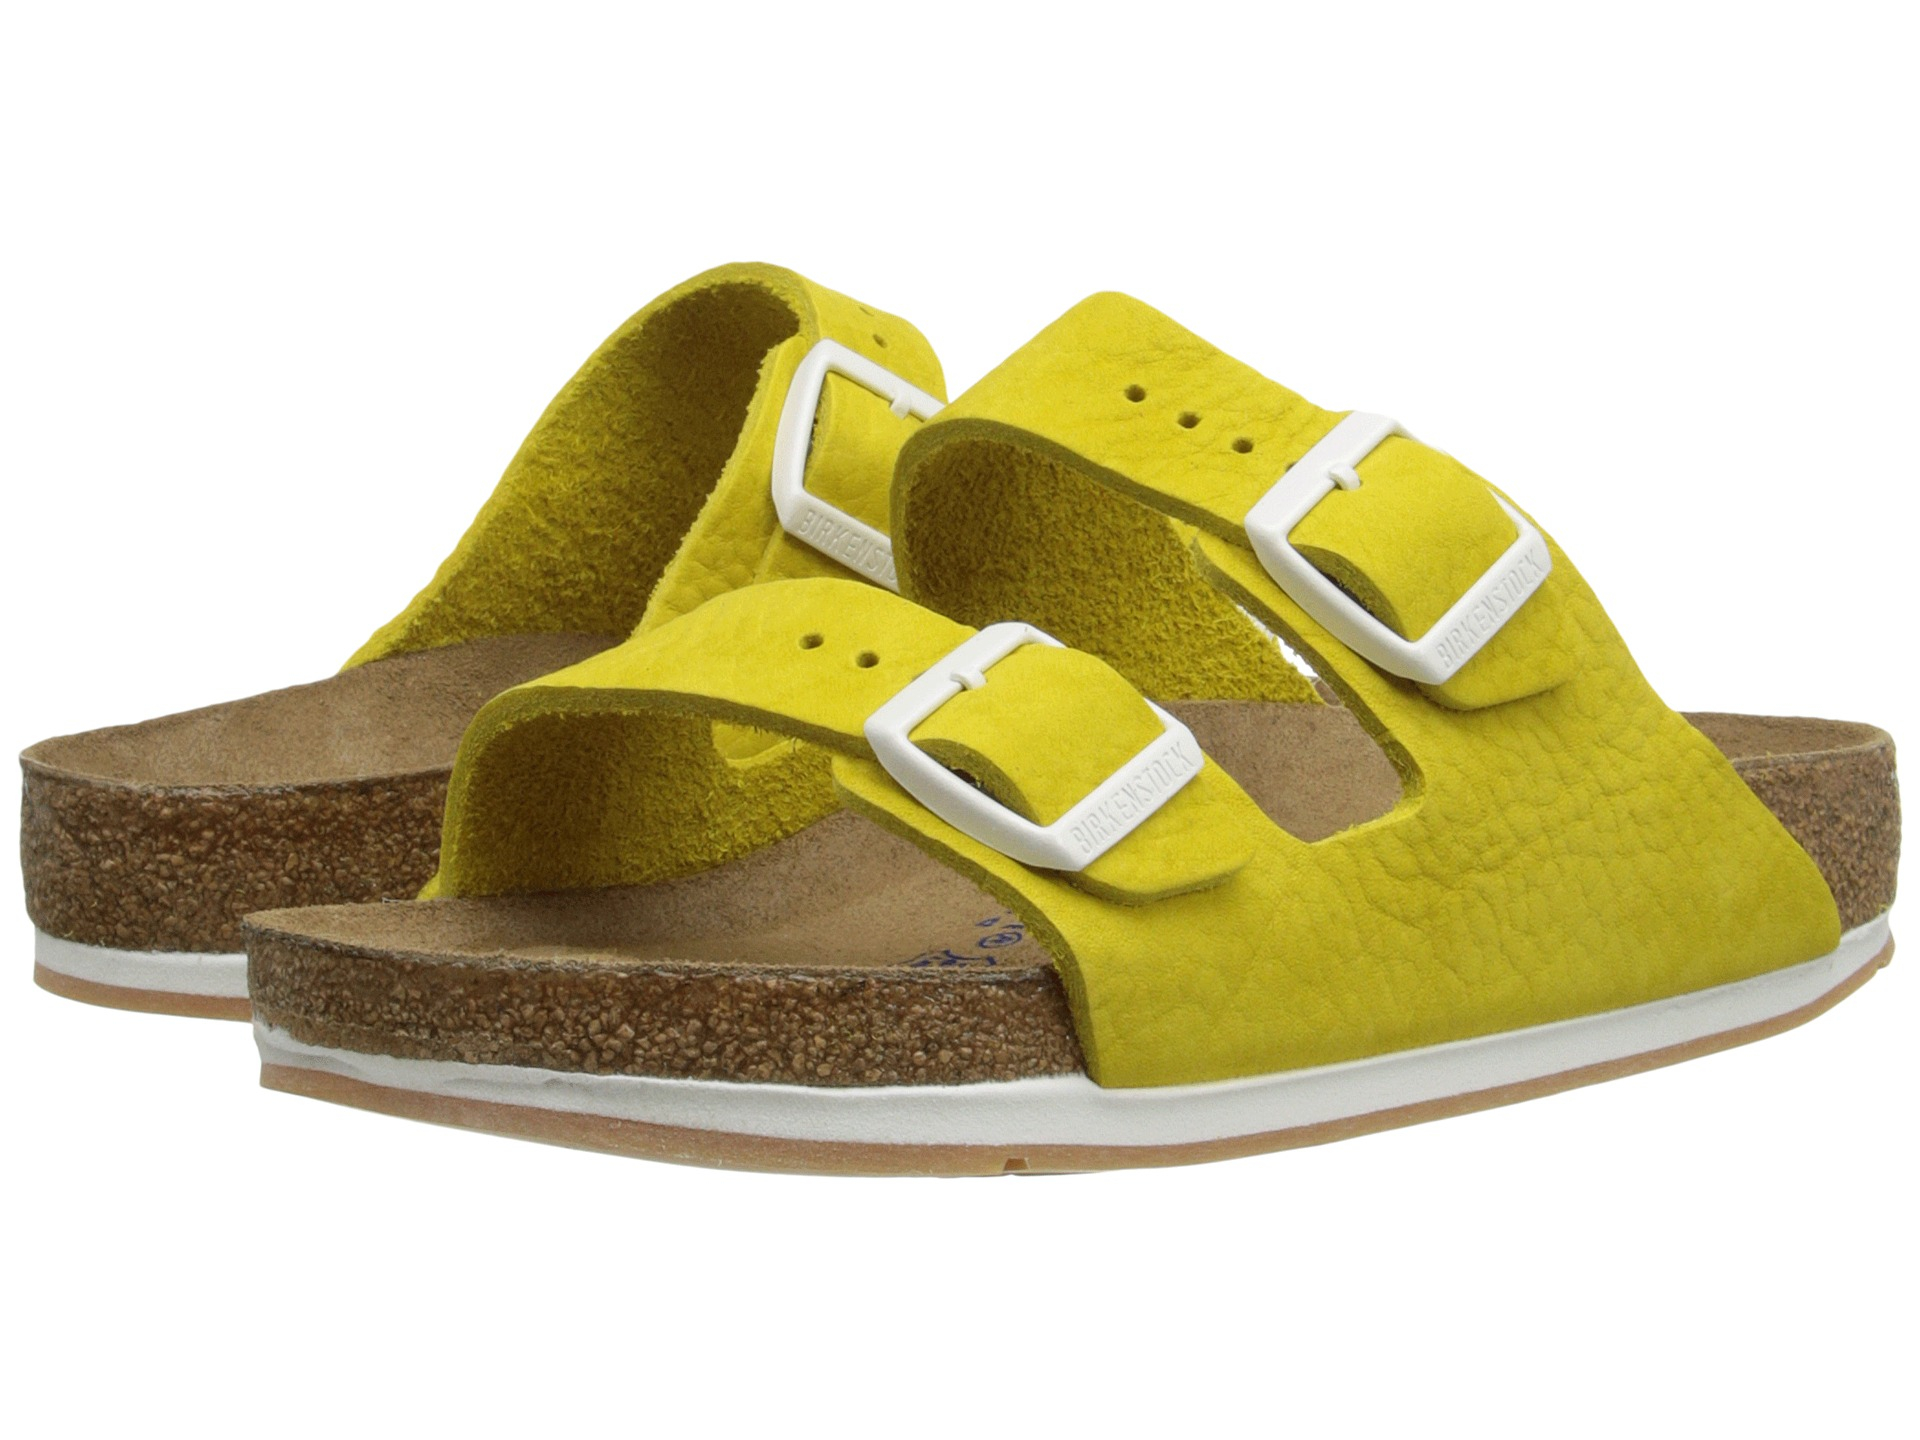 66a58d67d8d3 Lyst - Birkenstock Arizona Soft Footbed - Leather (unisex) in Yellow